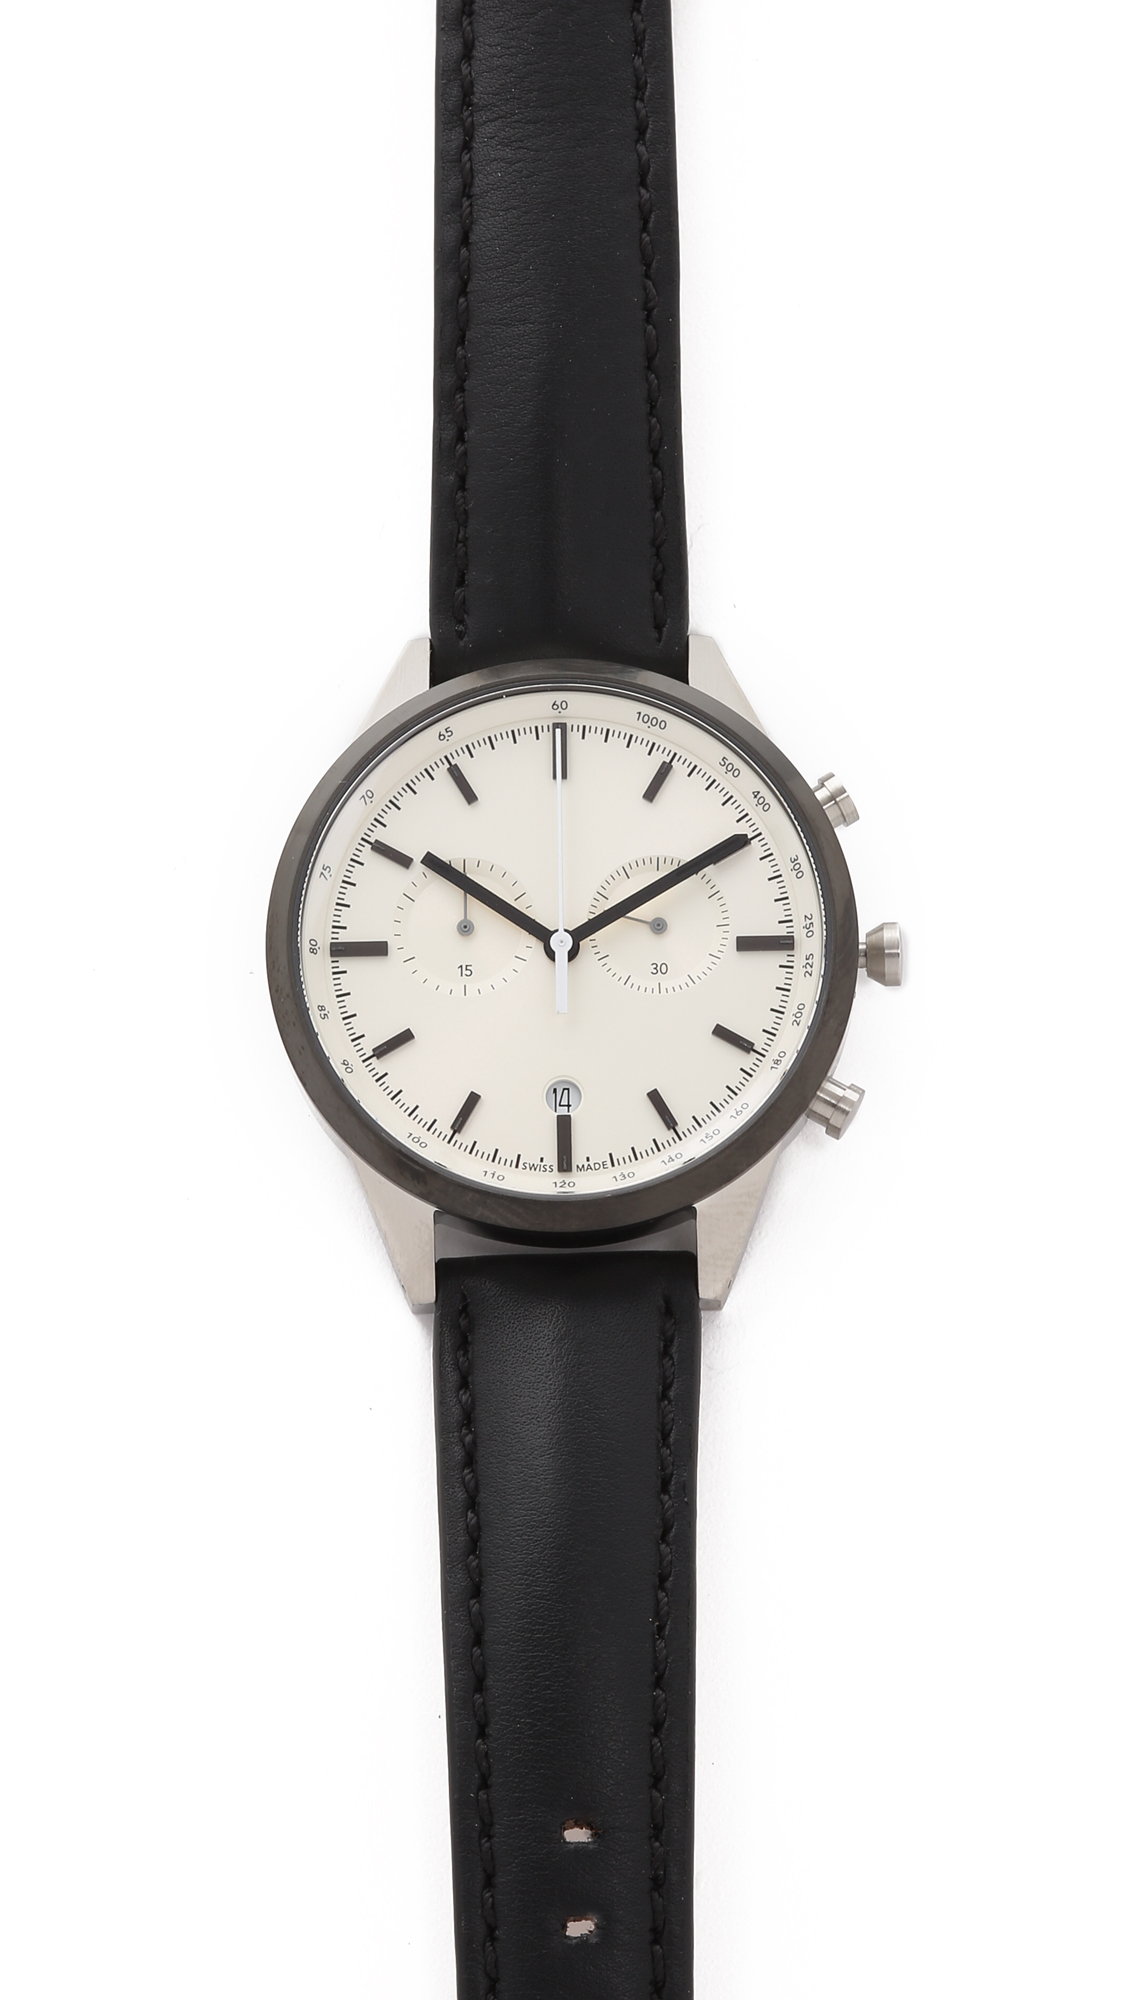 Uniform Wares C41 Grey Watch